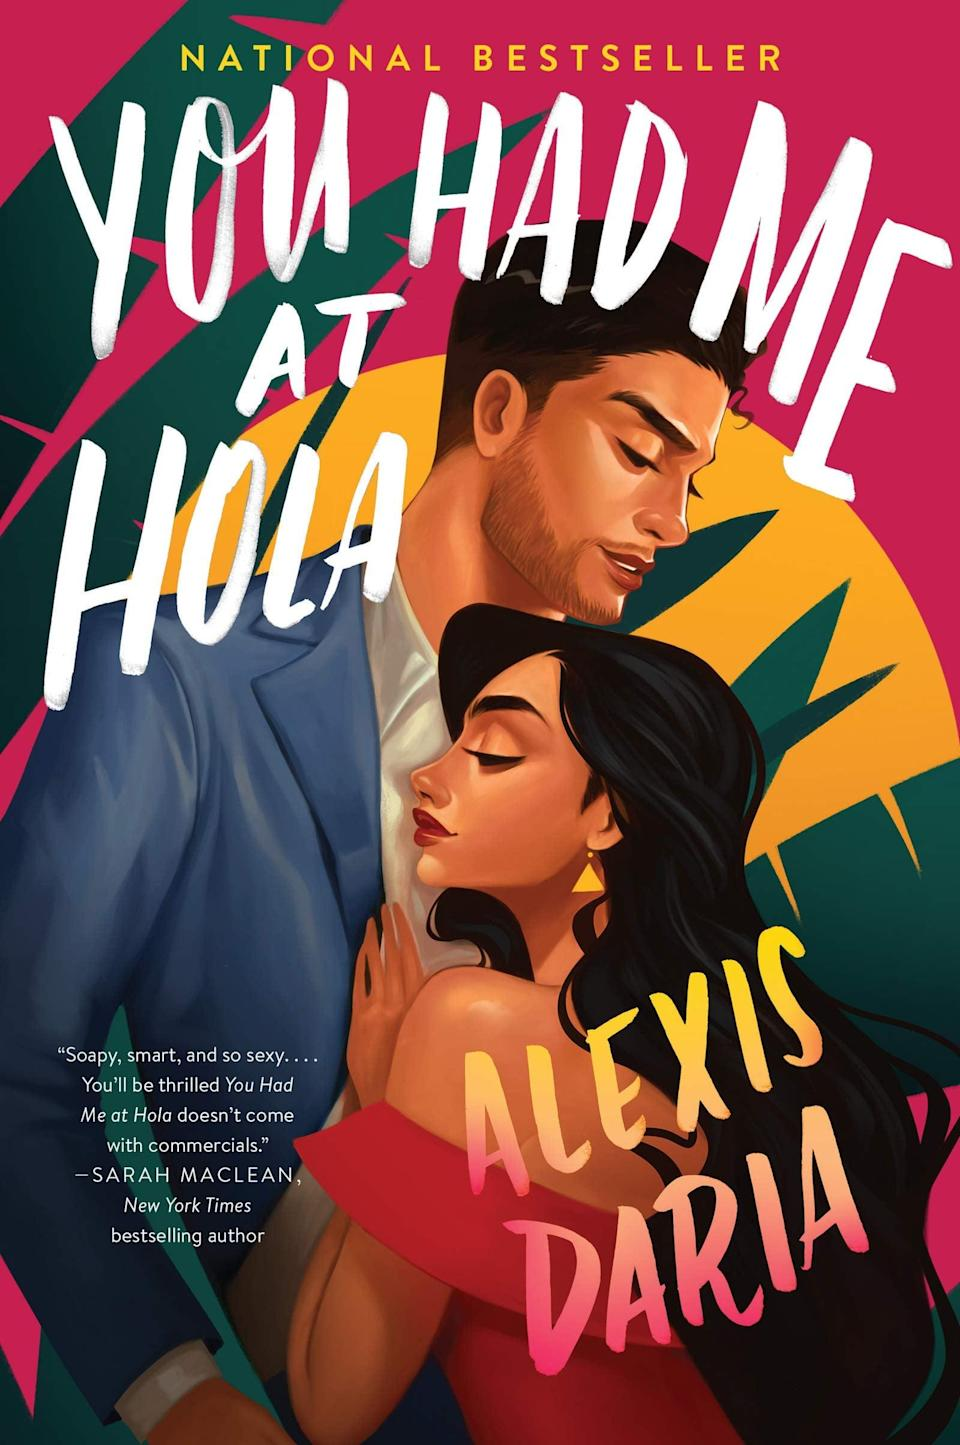 <p>Telenovela enthusiasts will want to read <span><strong>You Had Me at Hola</strong> by Alexis Daria</span> ($11), which dives into the story of soap opera actress Jasmine Lin Rodriguez as she begins filming the modern remake of a popular '90s telenovela. When a casting shake-up brings on popular telenovela actor Ashton Suárez as her new co-star, it's their <em>off-screen</em> chemistry that could make or break their careers.</p> <p>The story compares Jasmine and Ashton's show to the likes of <strong>Jane the Virgin</strong> and <strong>Ugly Betty</strong>, so if they enjoy watching those, they might like reading this book! It gives you a look into the production aspect of TV shows, from table reads to scene rehearsals with an intimacy coordinator, plus, the plot of each episode Jasmine and Ashton film plays out on paper alongside their own developing love story. The plot itself is like the perfect soap opera: swoon-y, sexy, and entertaining as hell.</p>